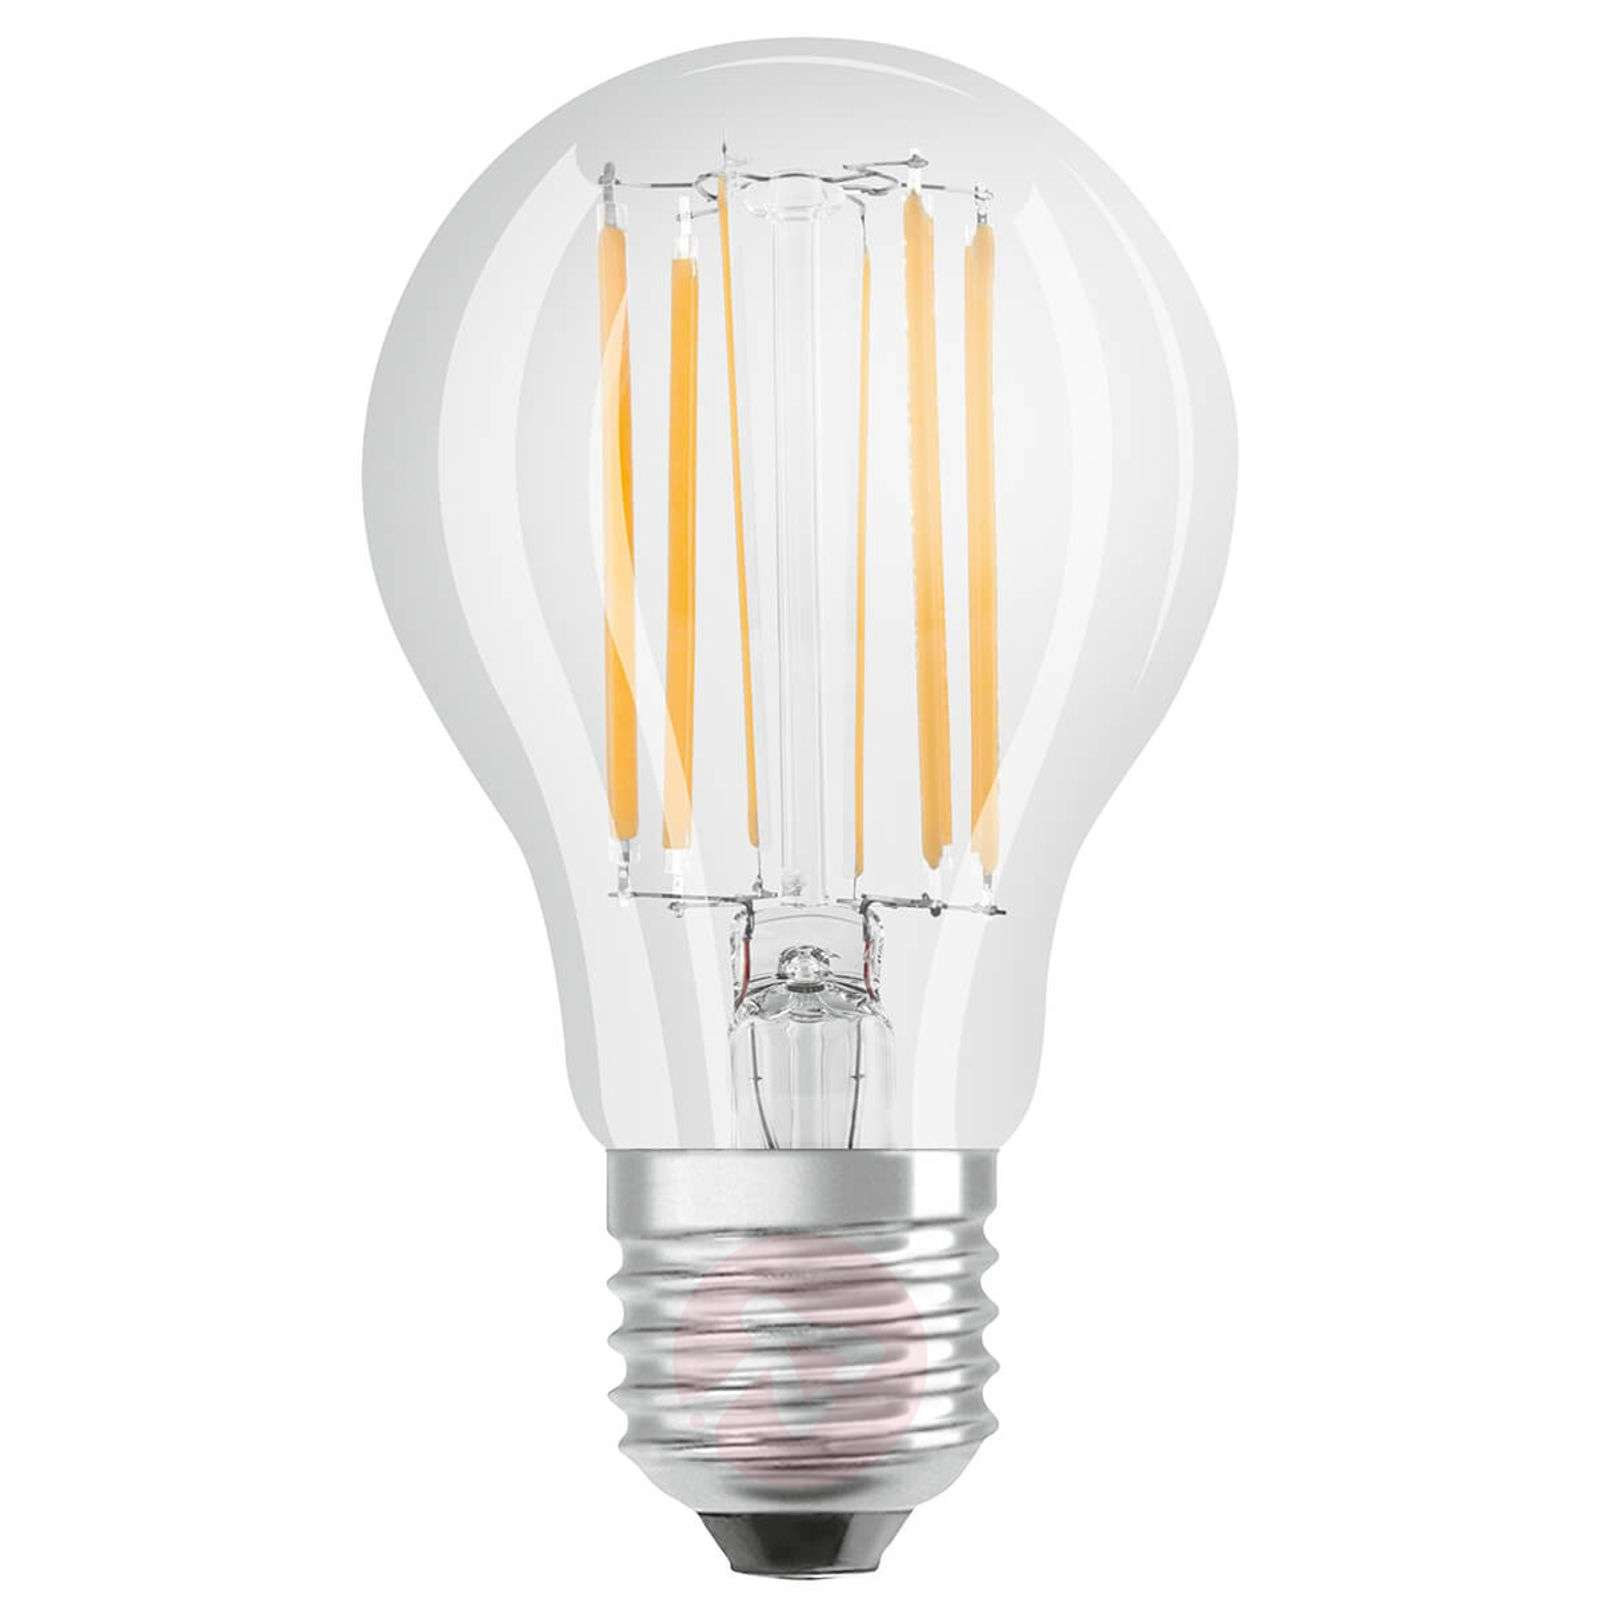 Ampoule LED E27 8,5W,blanc chaud, 1 055lm,dimmable-7262008-01